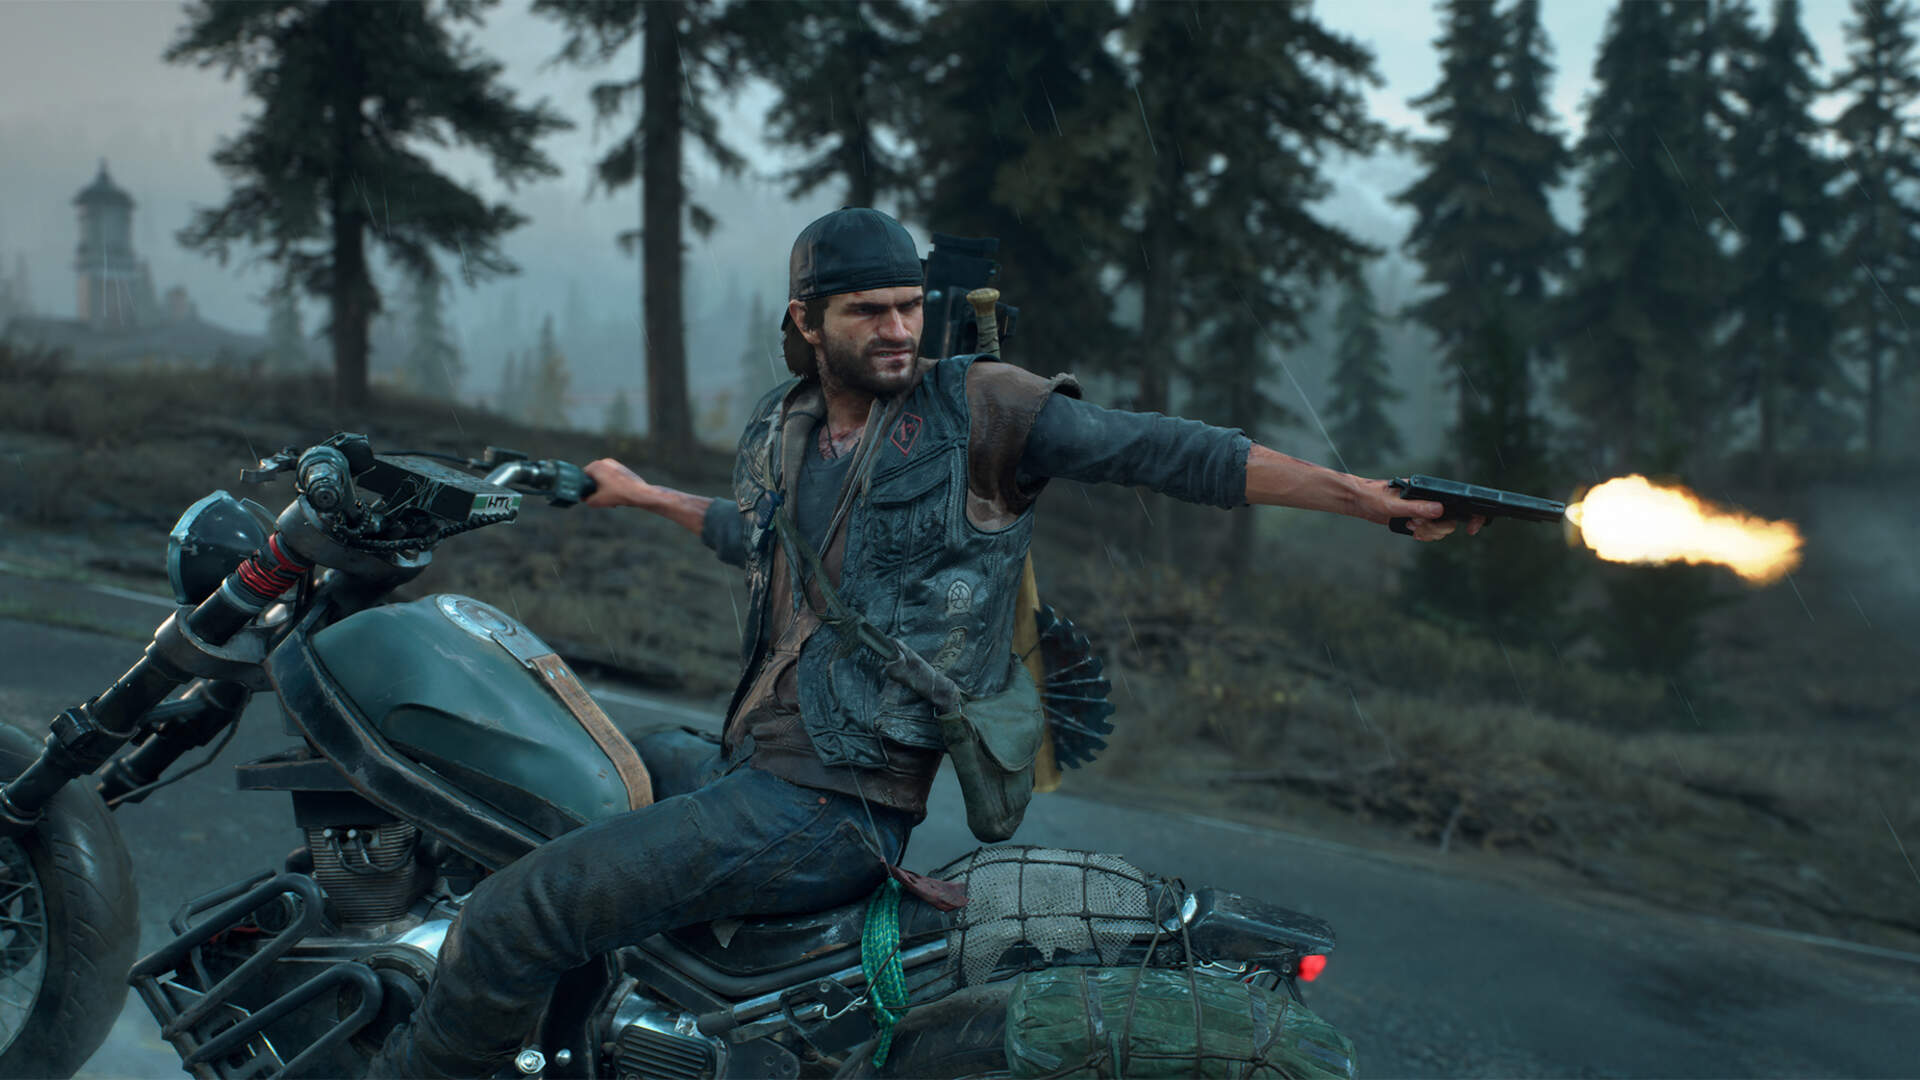 FEMA, Militias and Motorcycle Gangs: Days Gone's Apocalyptic Politics